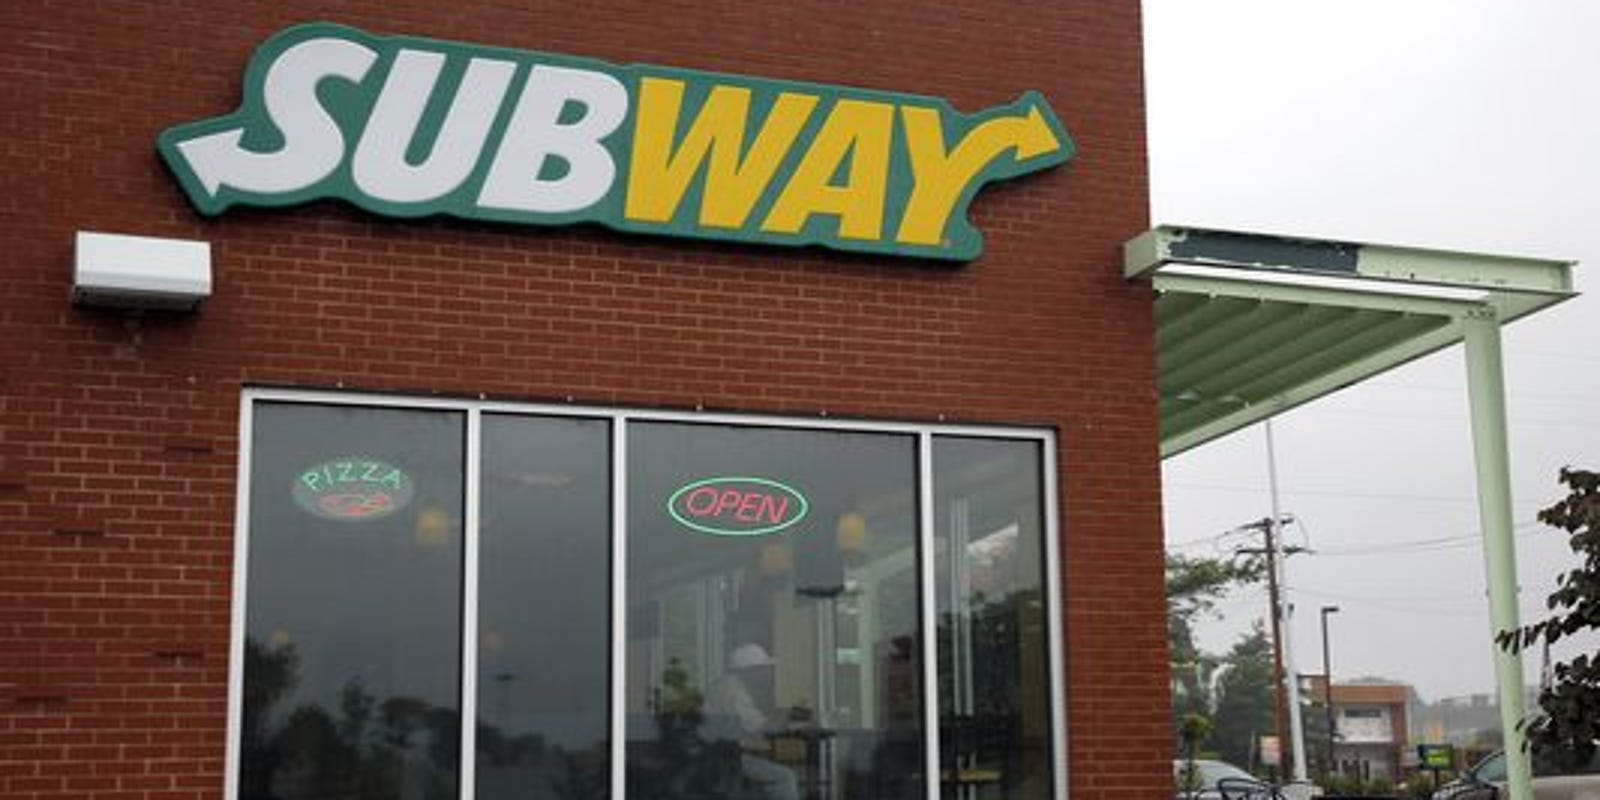 Subway co-founder Fred DeLuca, dies at 67